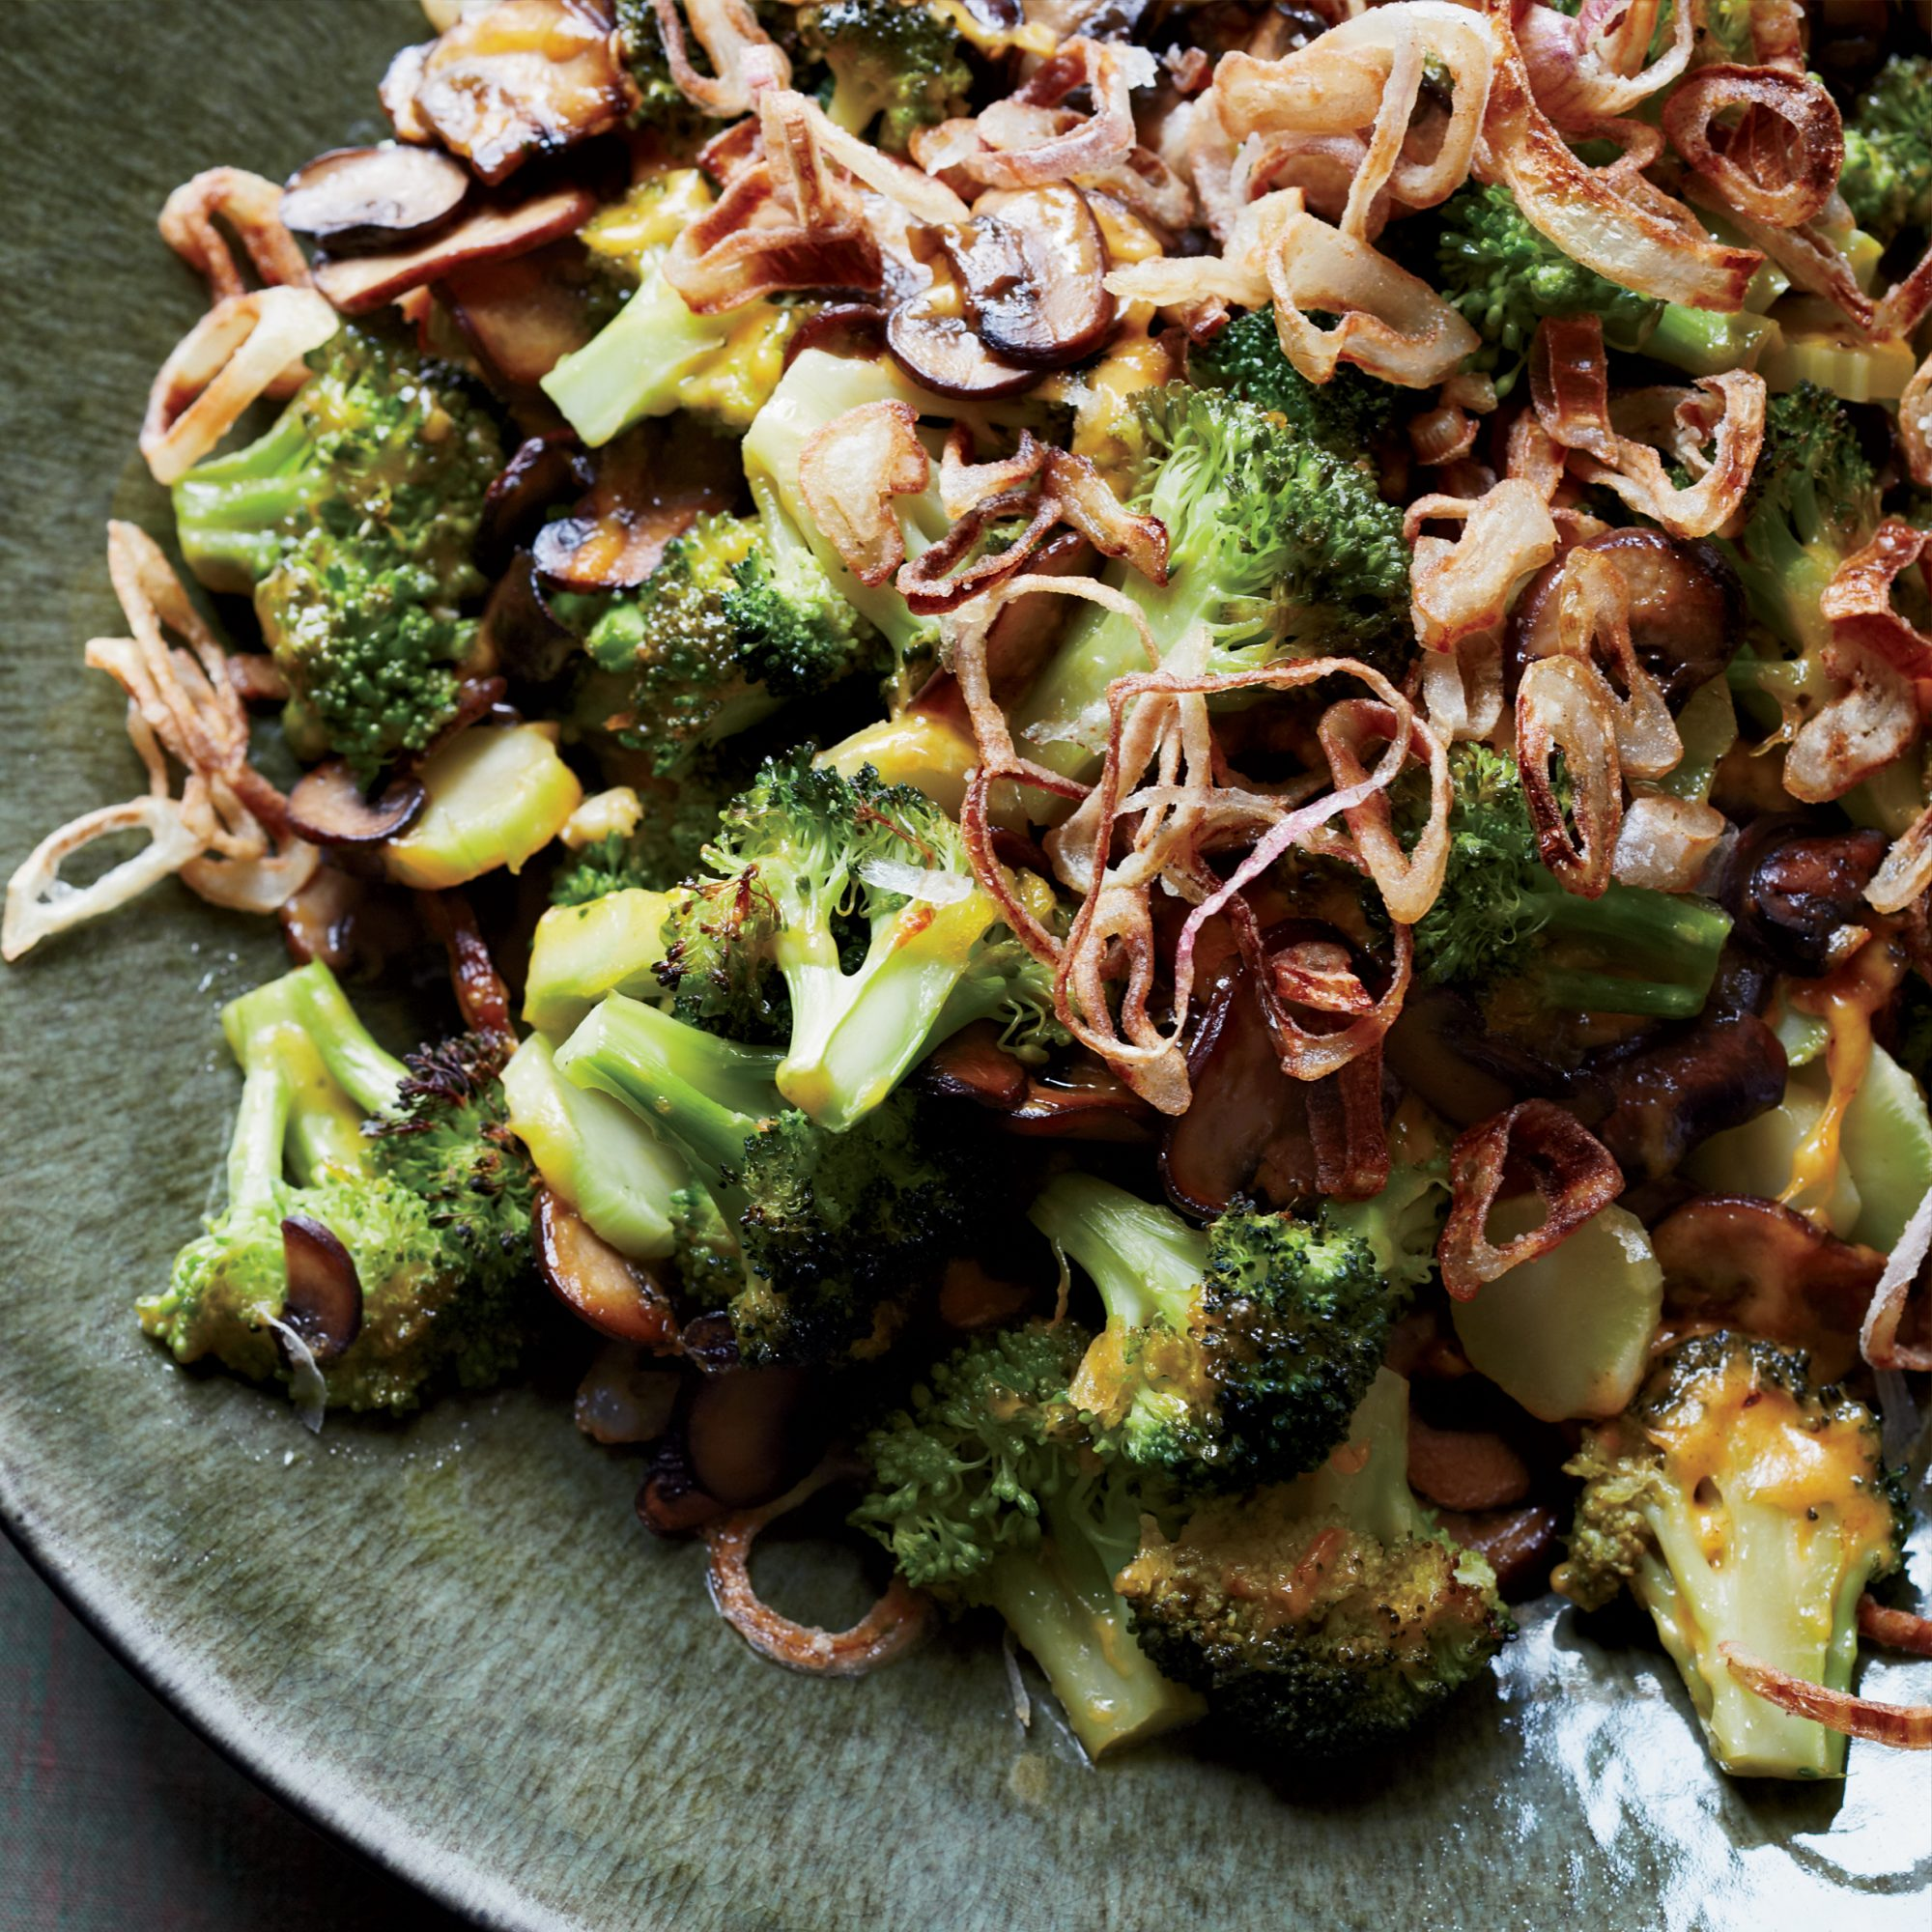 original-201311-r-baked-broccoli-and-mushrooms-with-crispy-shallots.jpg